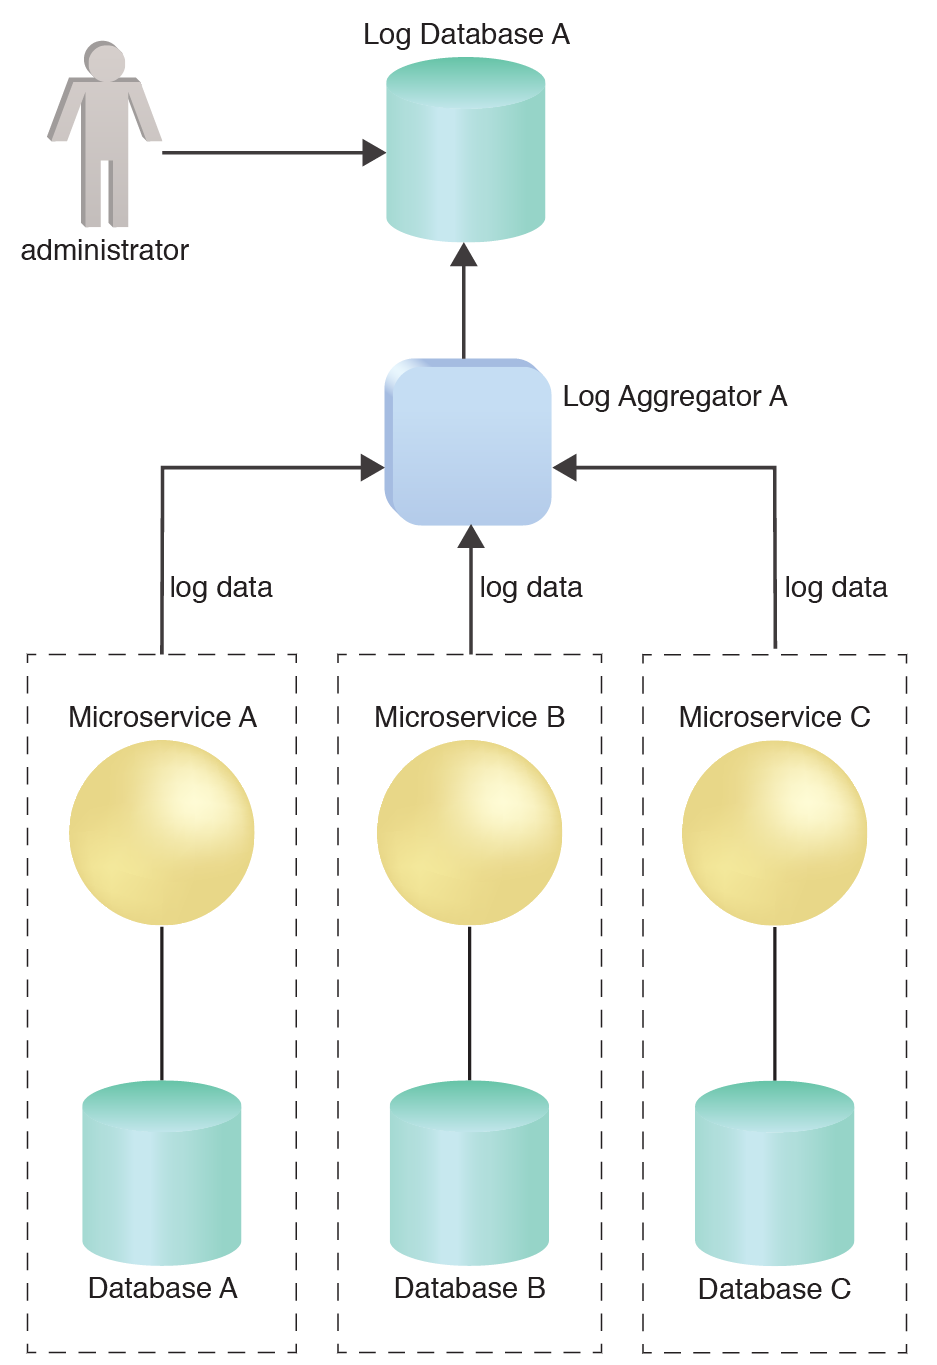 Log Aggregator: Log Aggregator A retrieves the individual log data and stores it in Log Database A, from which the administrator can access them.